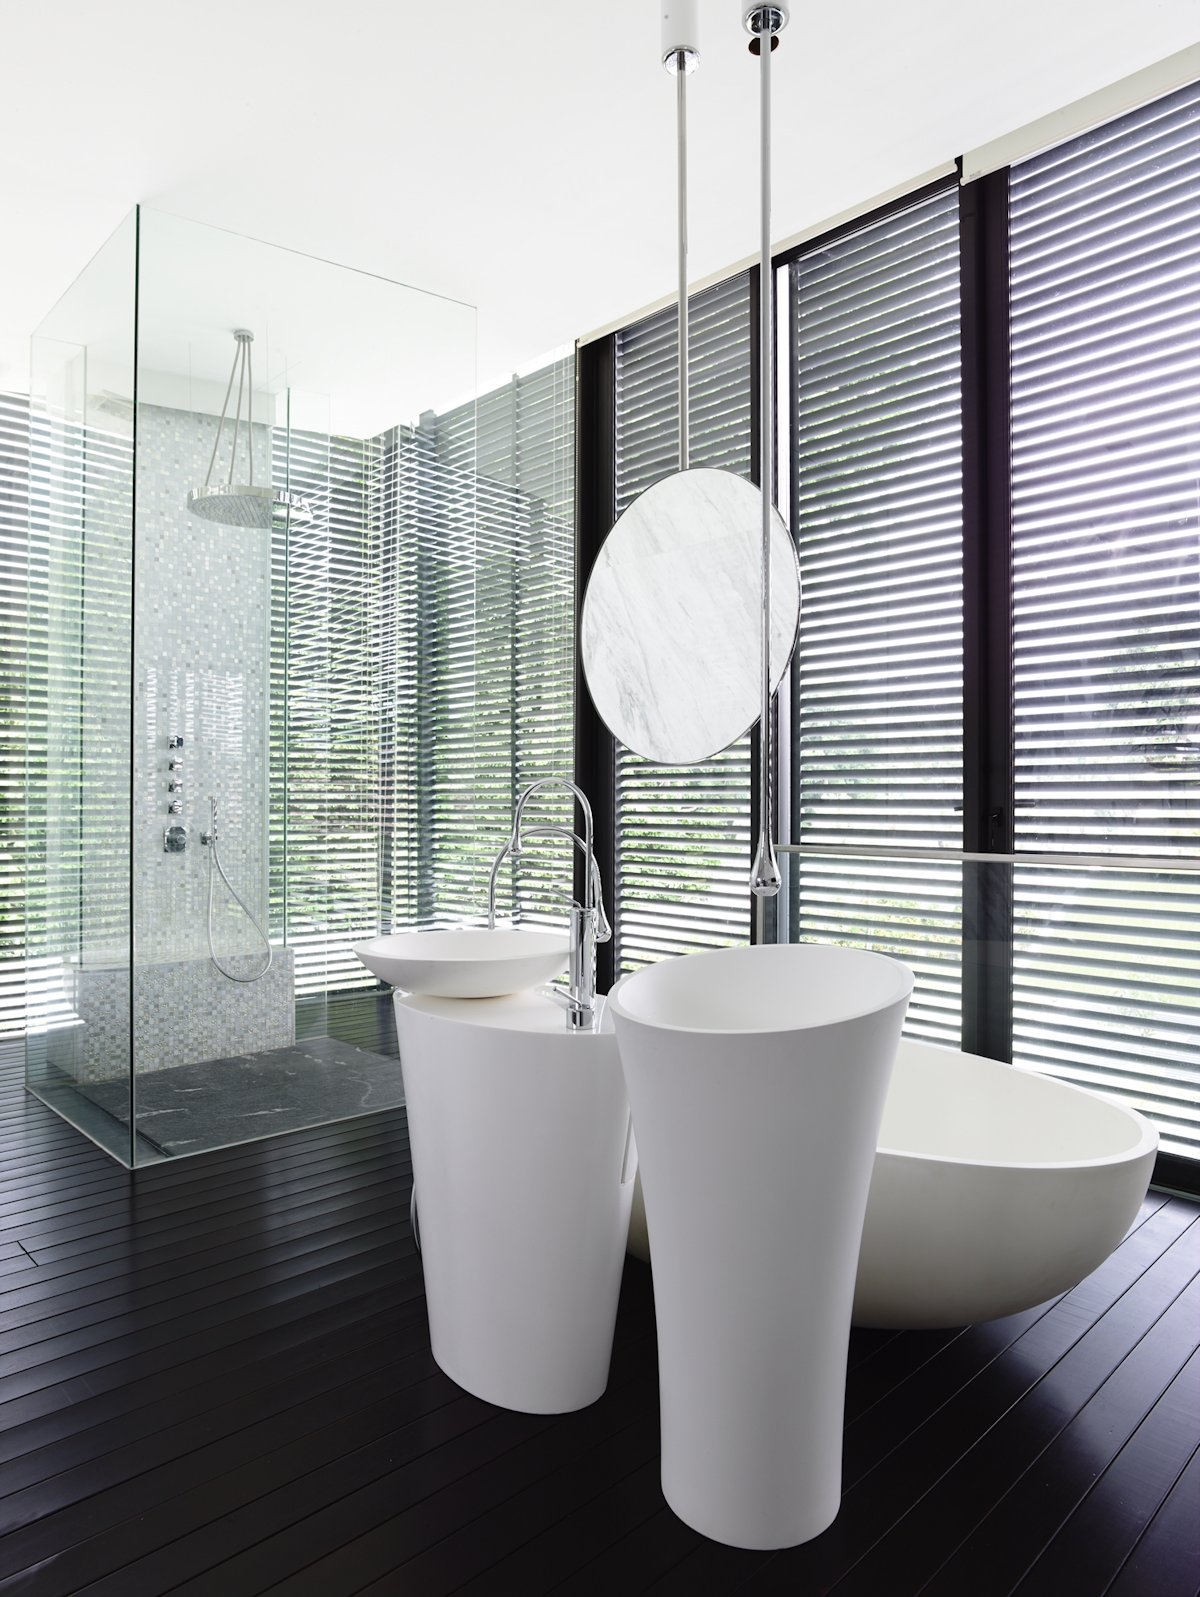 Glass Shower, Sink, Home in Singapore